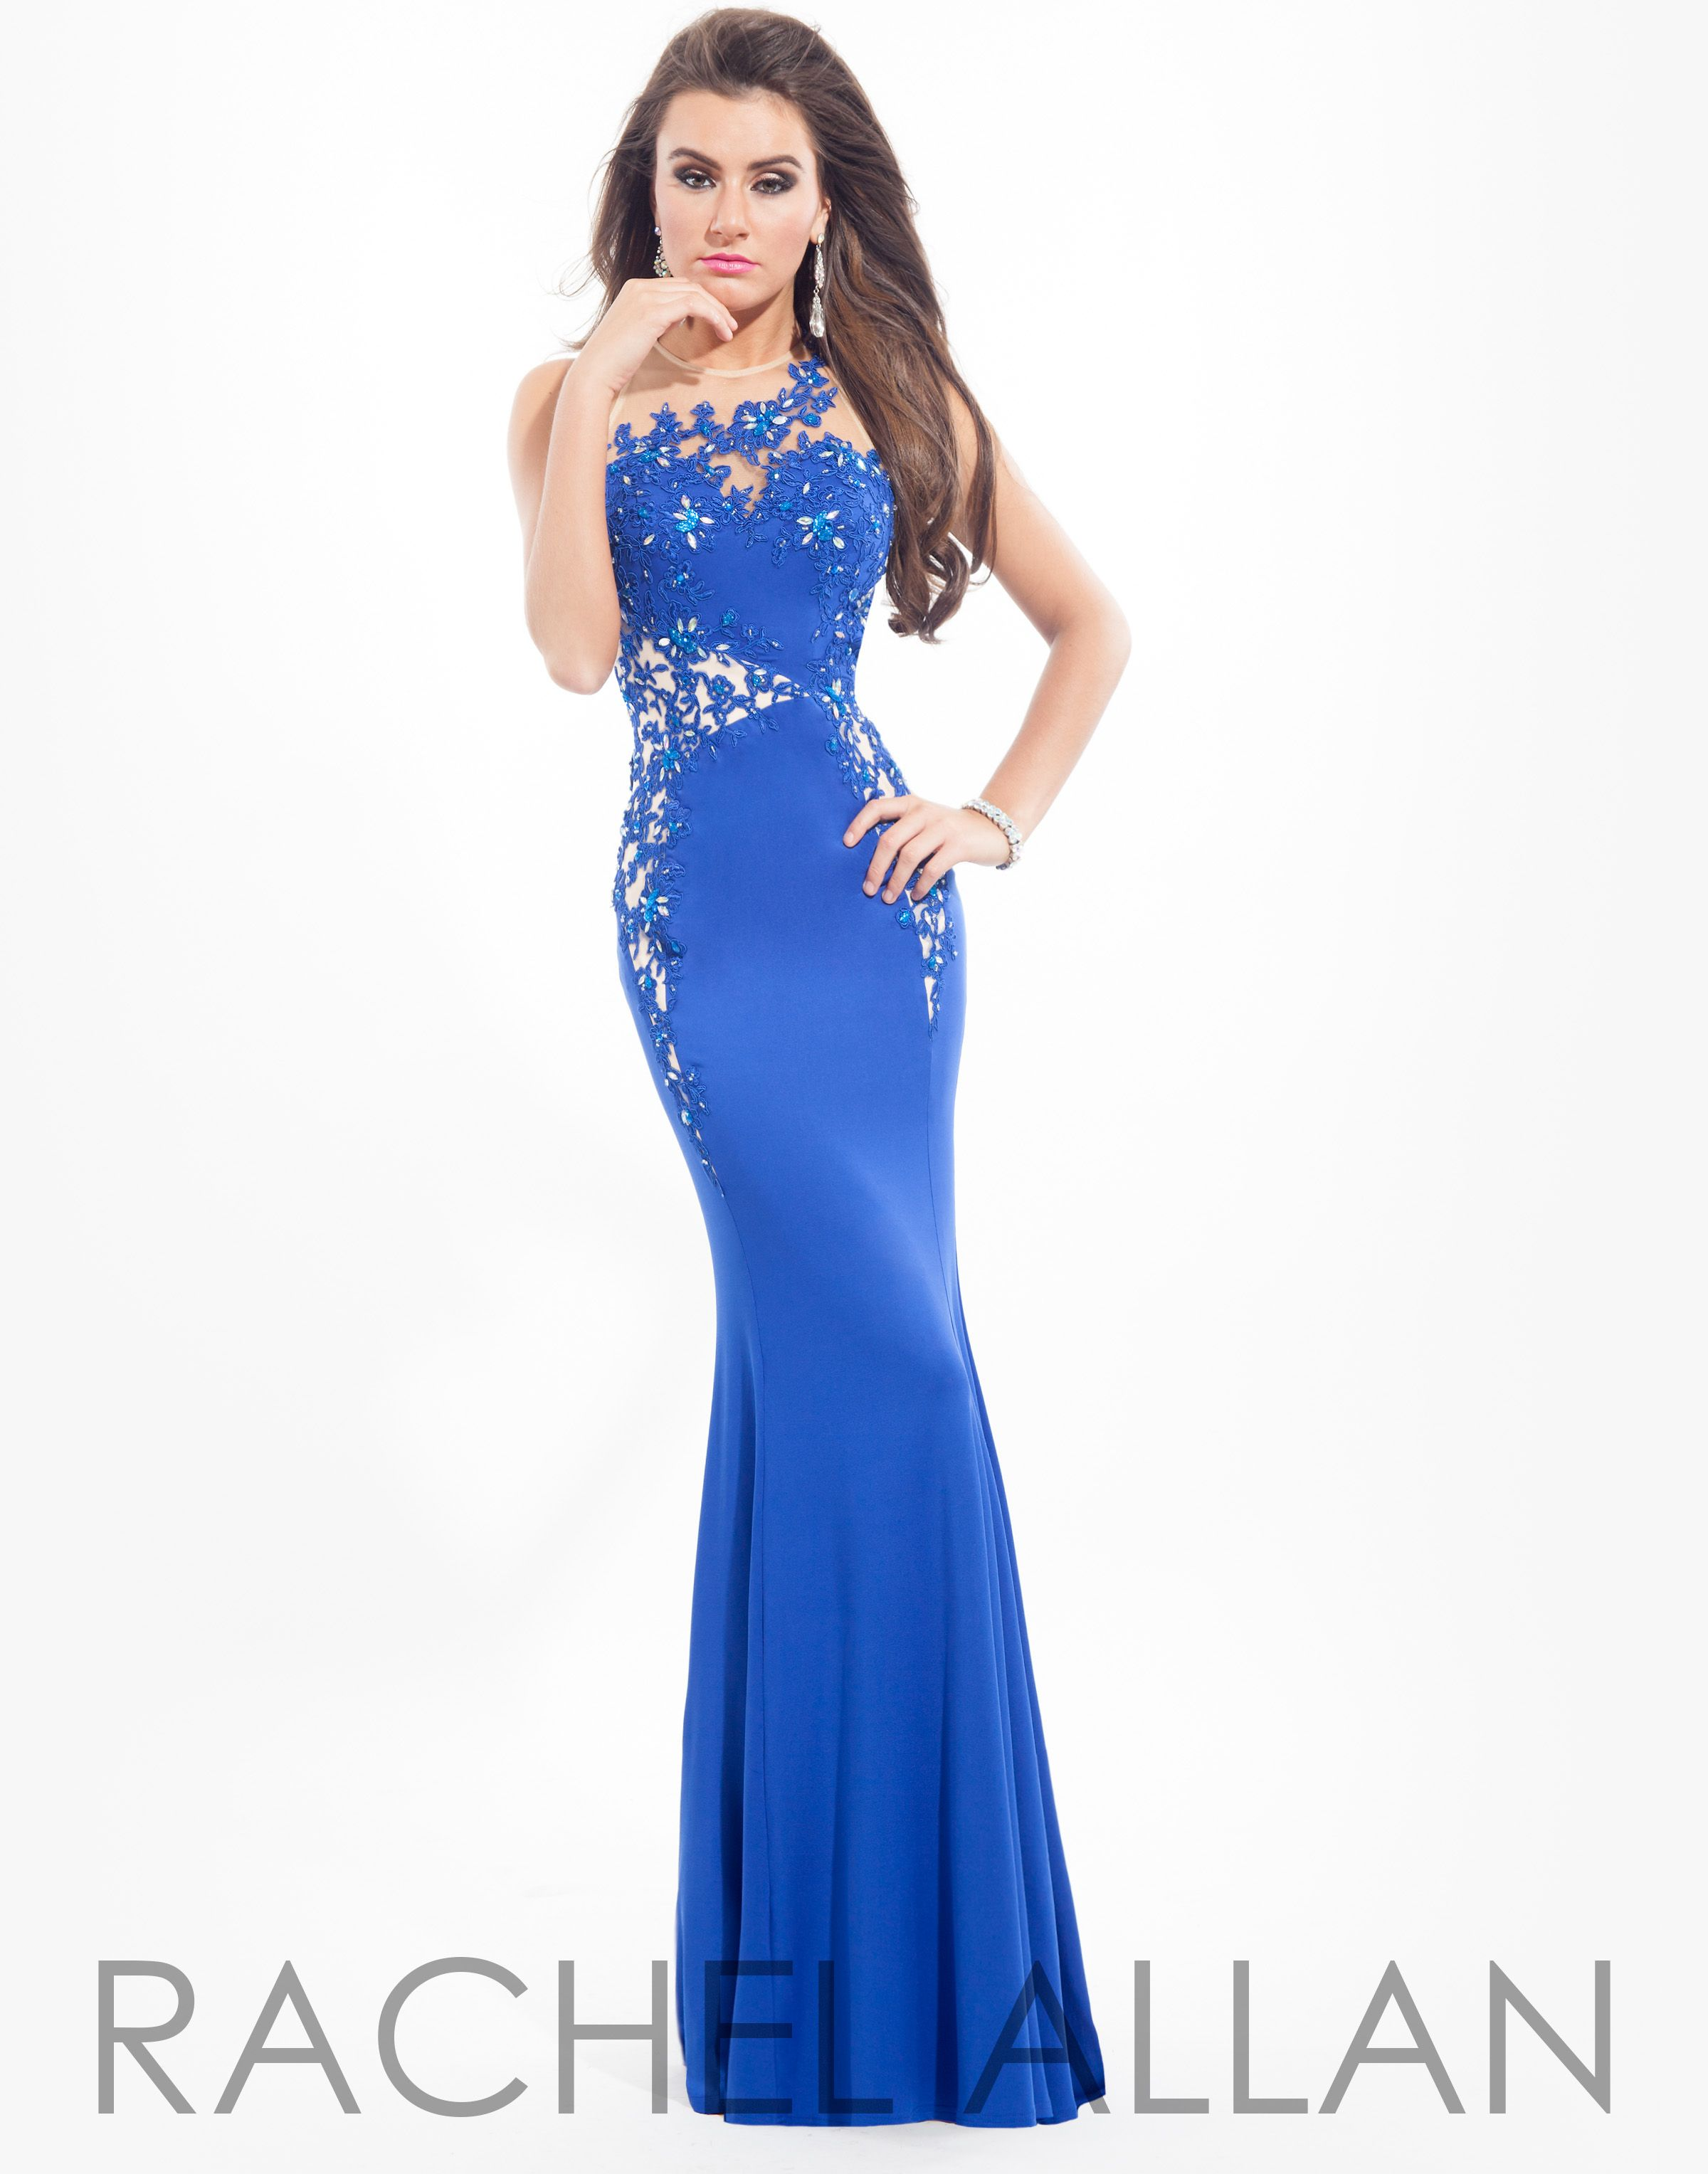 Buy this Rachel Allen Prom Dress from Bridal & Formal by RJS 3806 ...